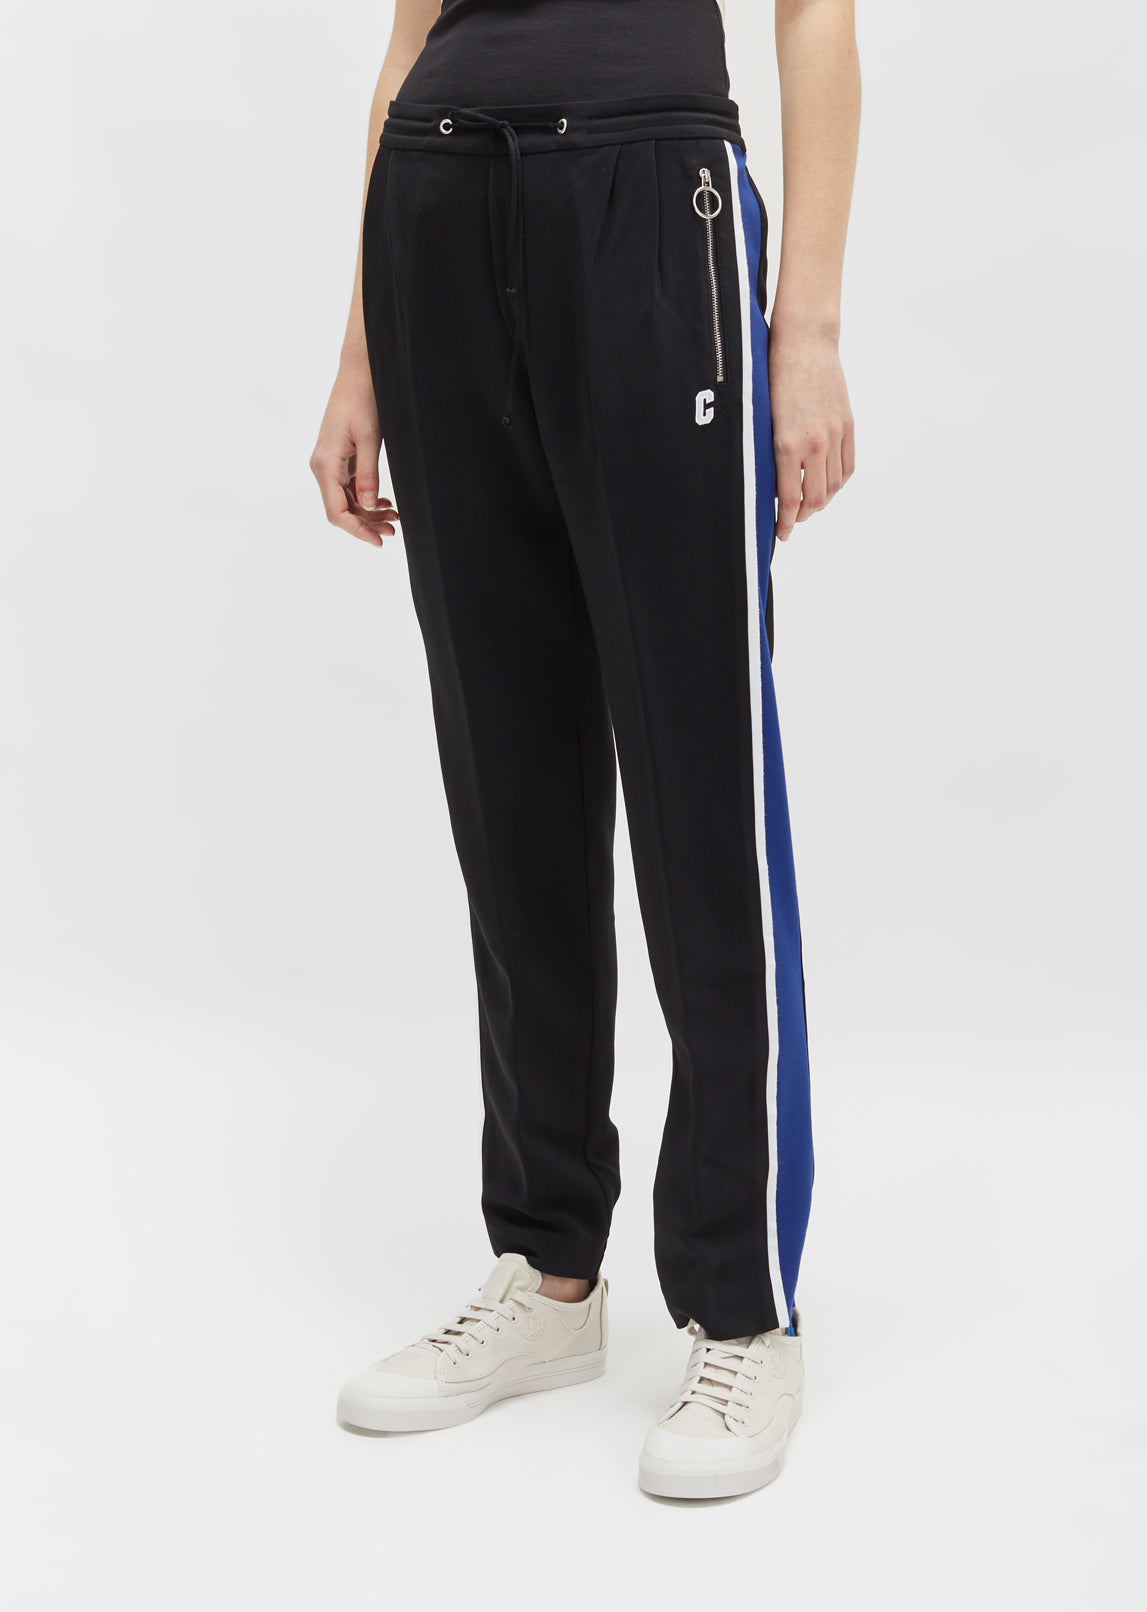 Free Shipping Countdown Package Blue Side Stripe Lounge Pants Free Shipping Many Kinds Of yIZMCqNky6